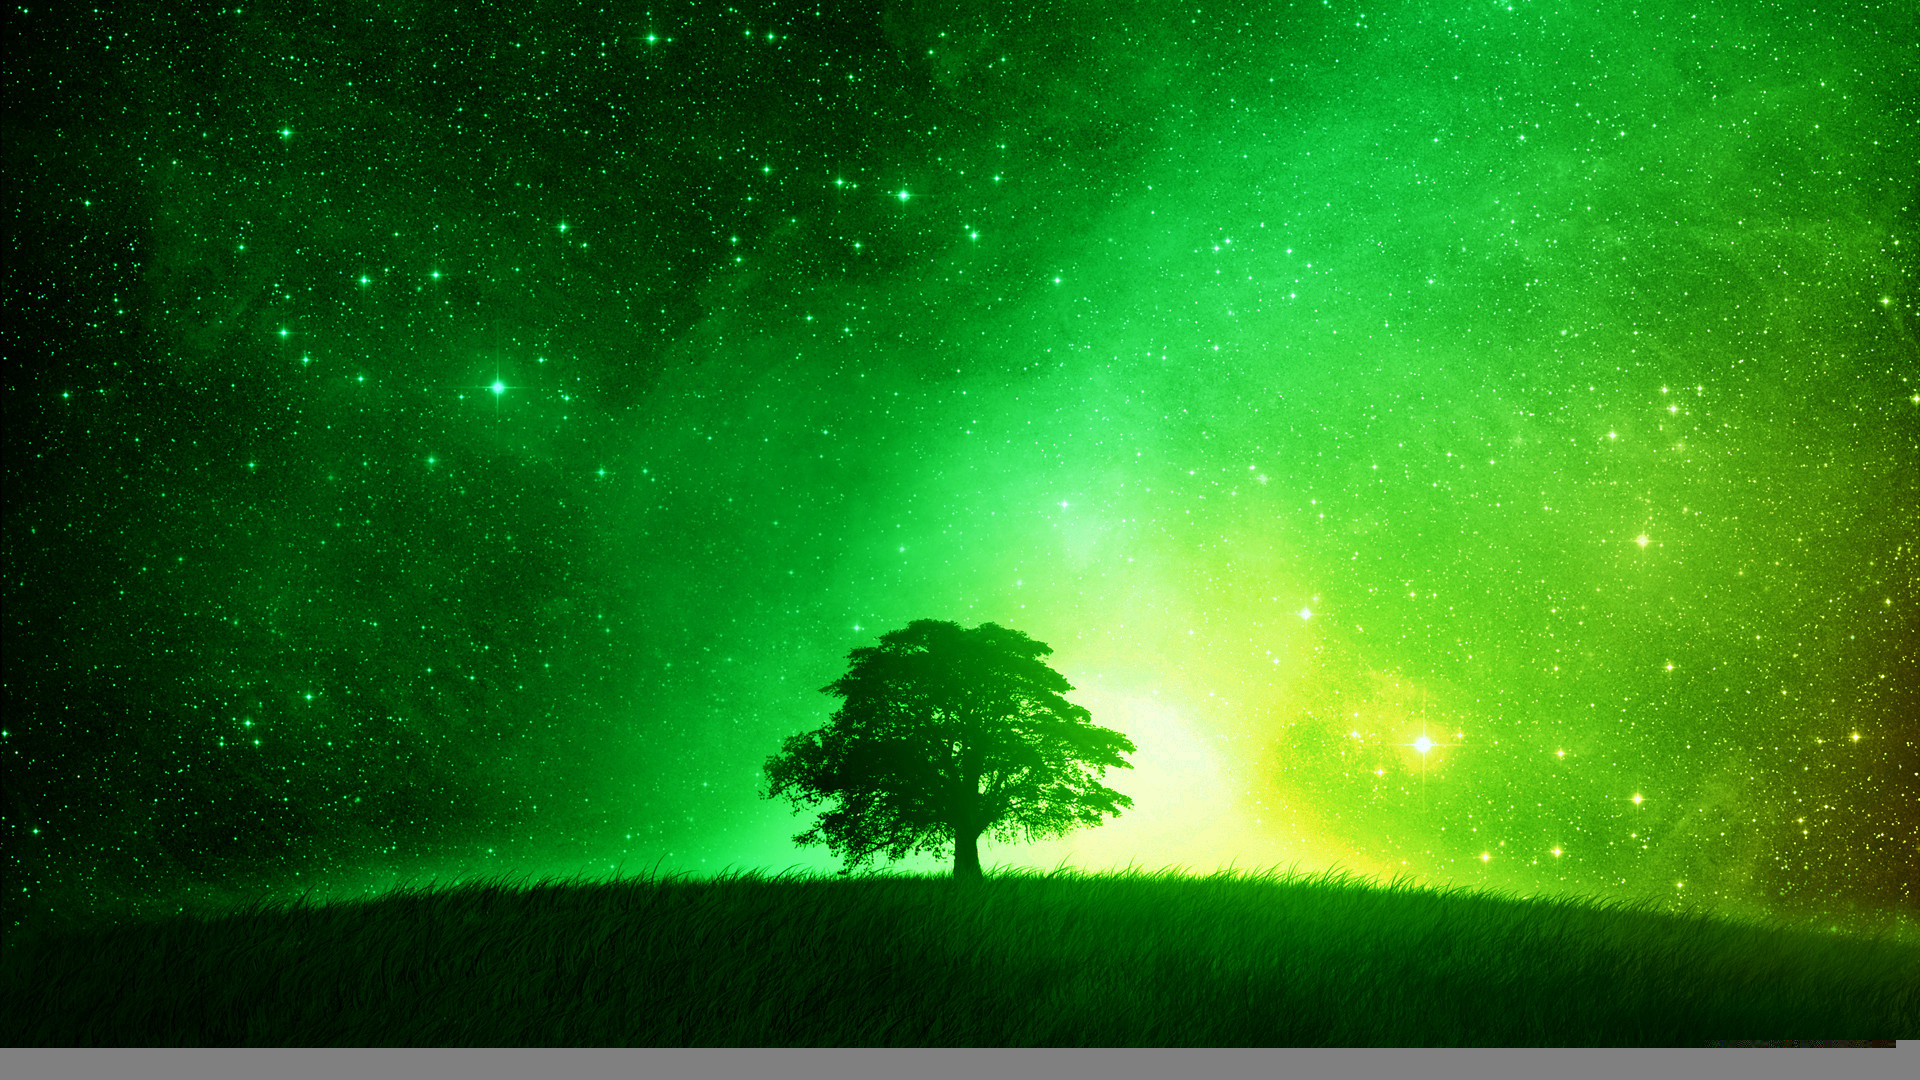 hd lime green backgrounds amazing images background photos 1080p windows  wallpapers high quality artworks ultra hd